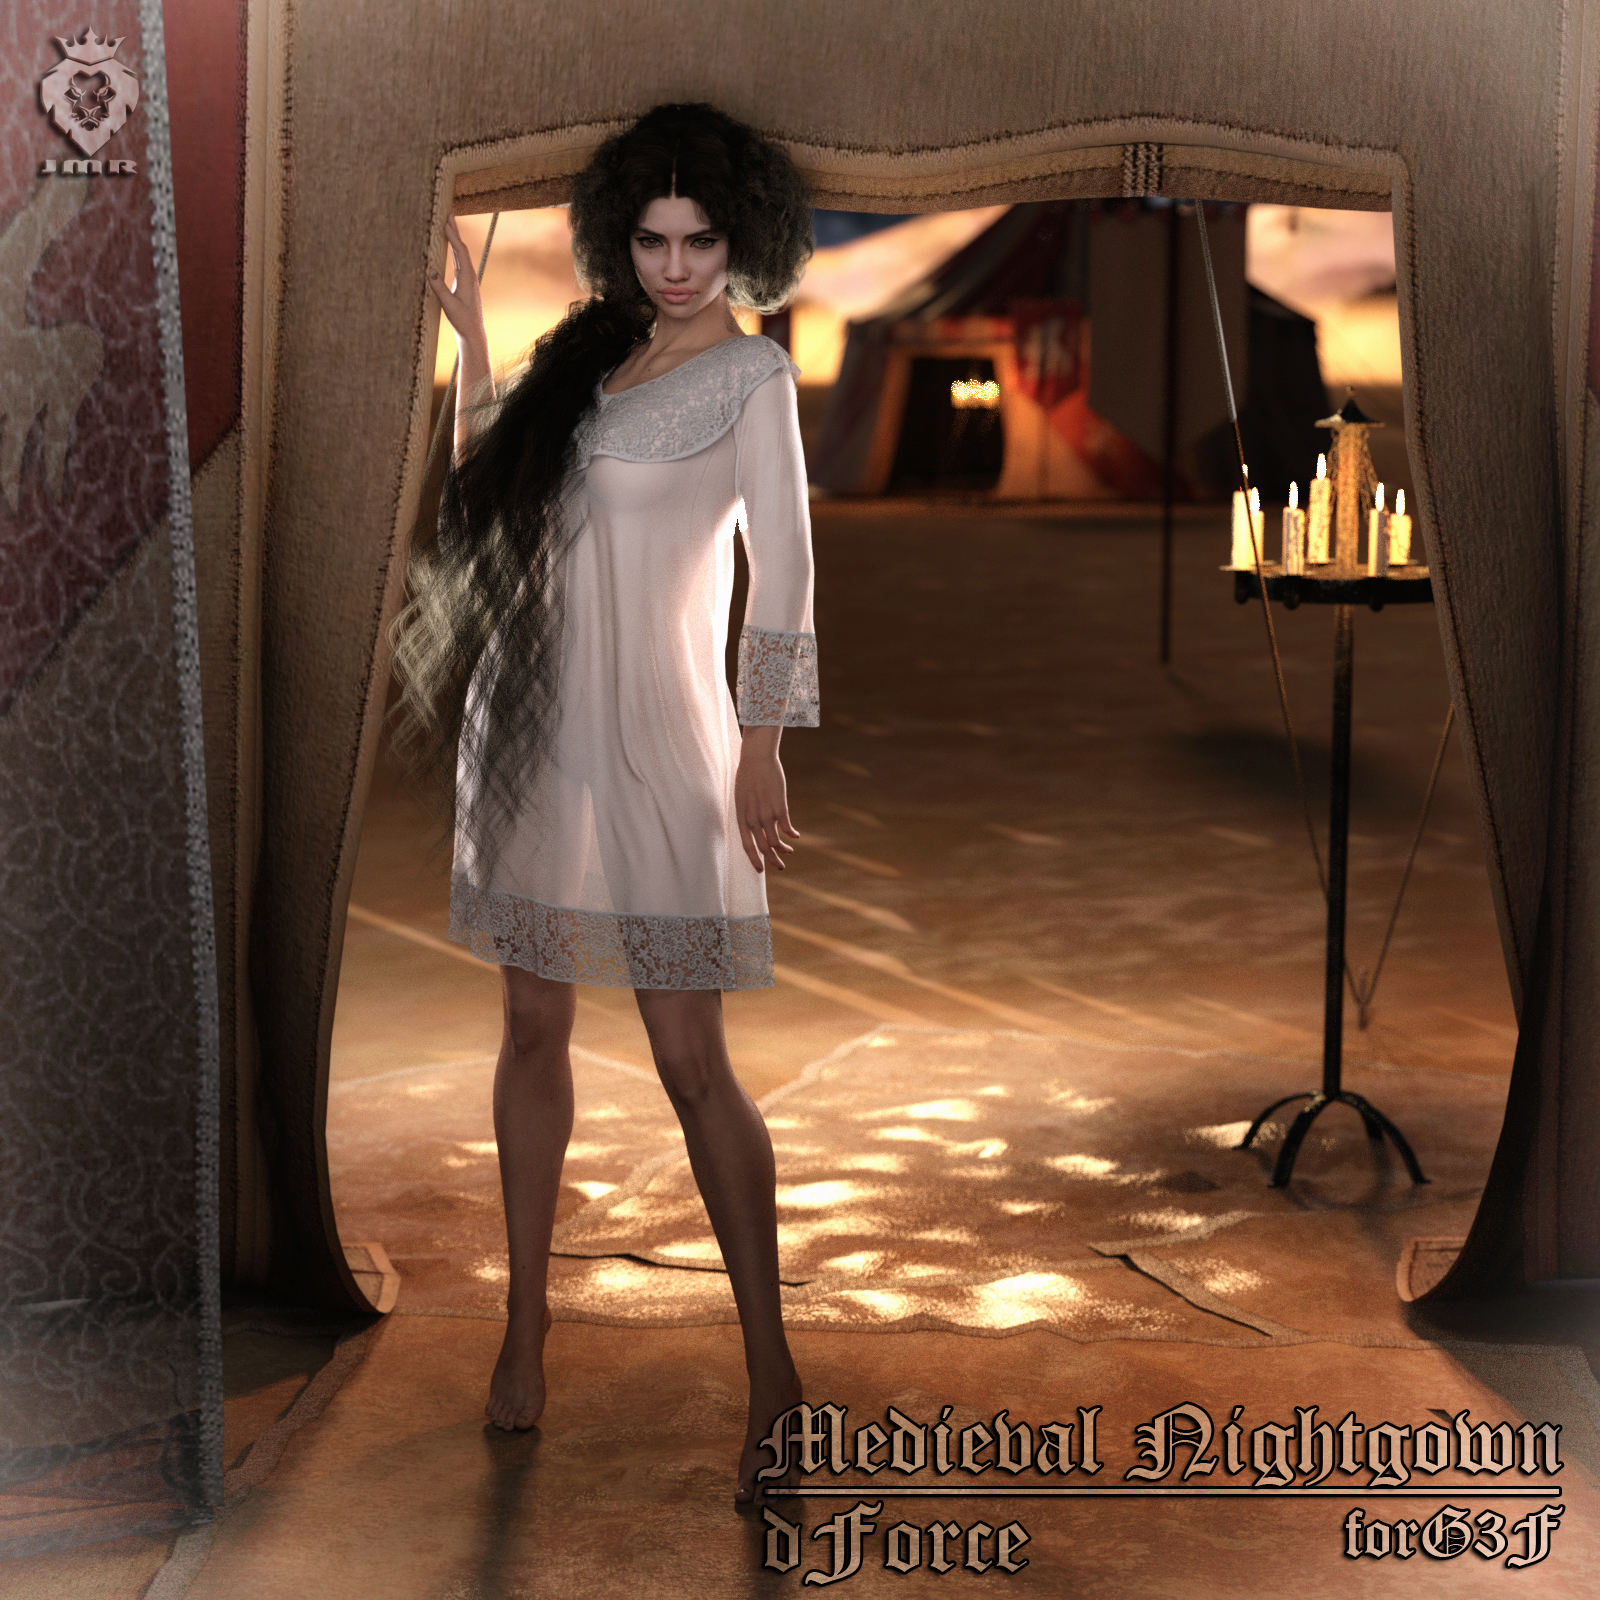 Medieval Nightgown